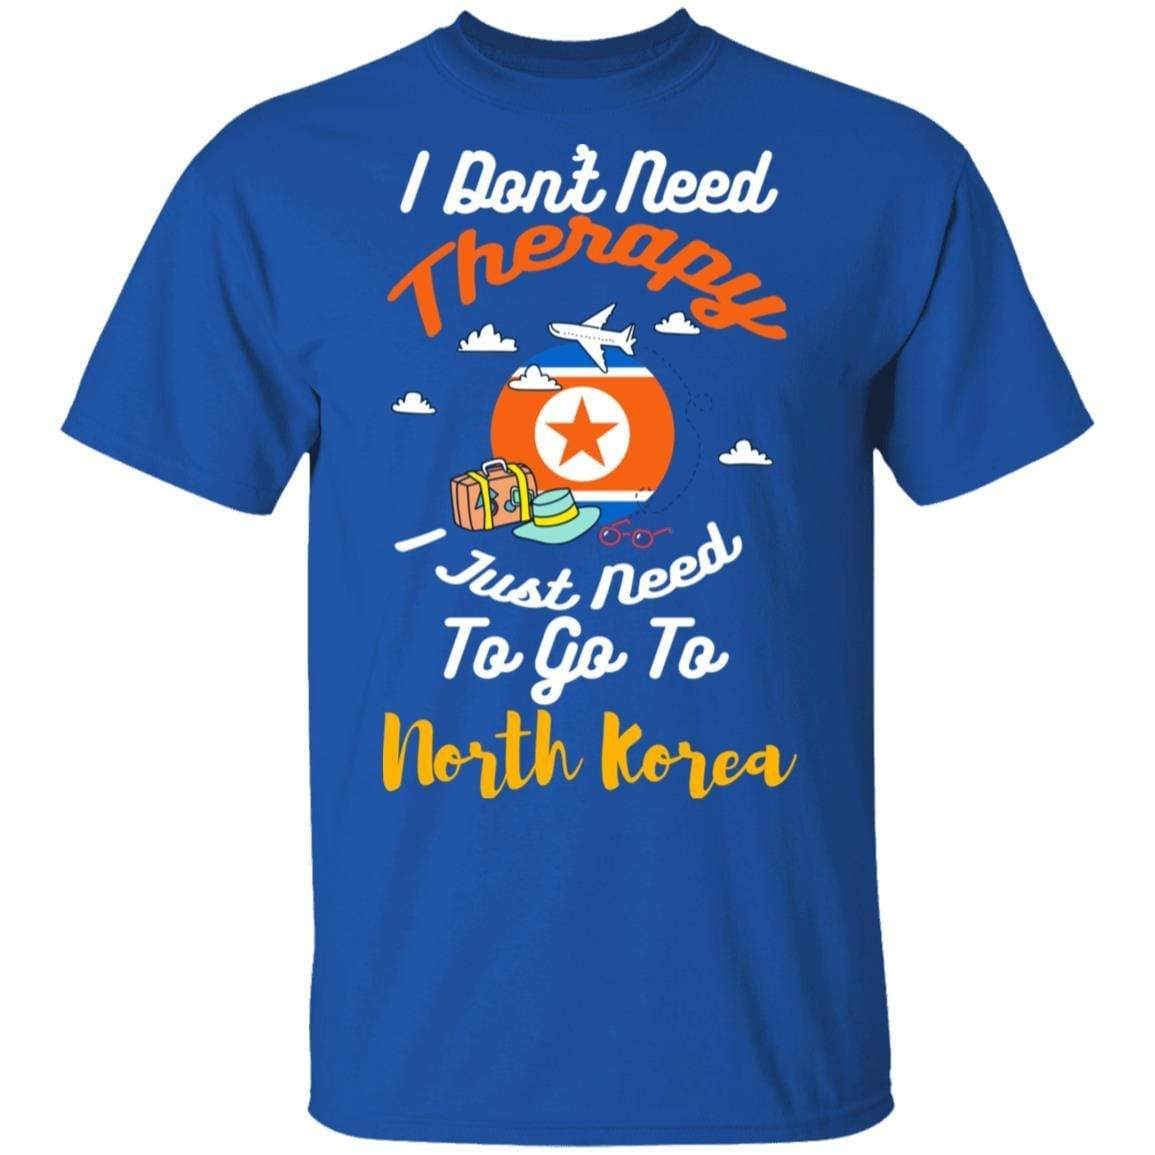 I Don't Need Therapy I Just Need To Go To North Korea T-Shirts, Hoodies 1049-9971-87589183-48286 - Tee Ript